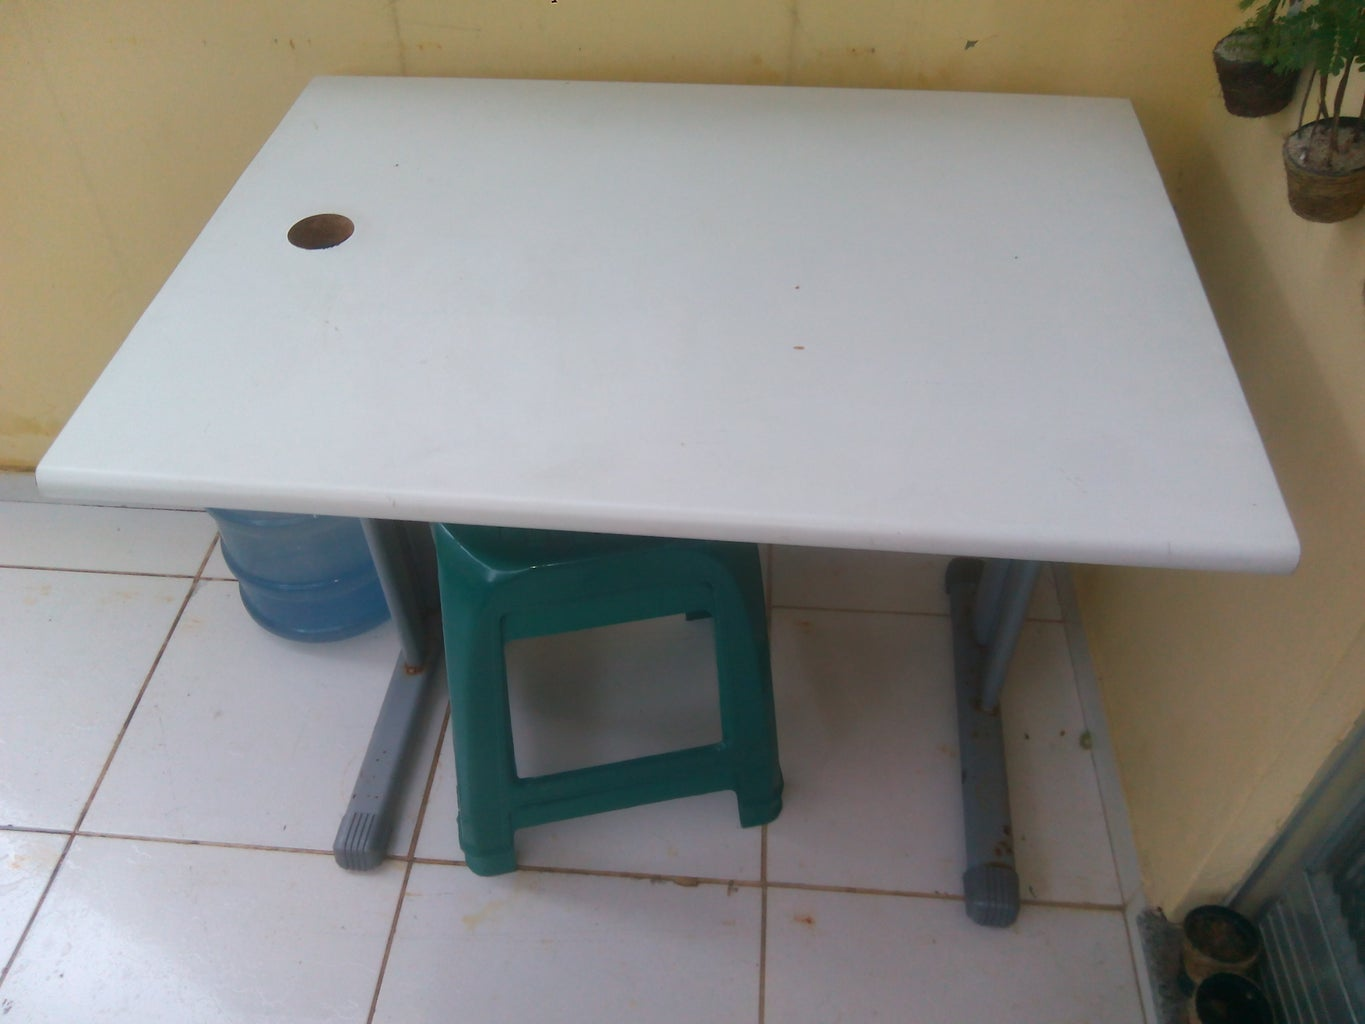 Convert Your Jigsaw Into a Bench-top Saw Using an Old Computer Desk